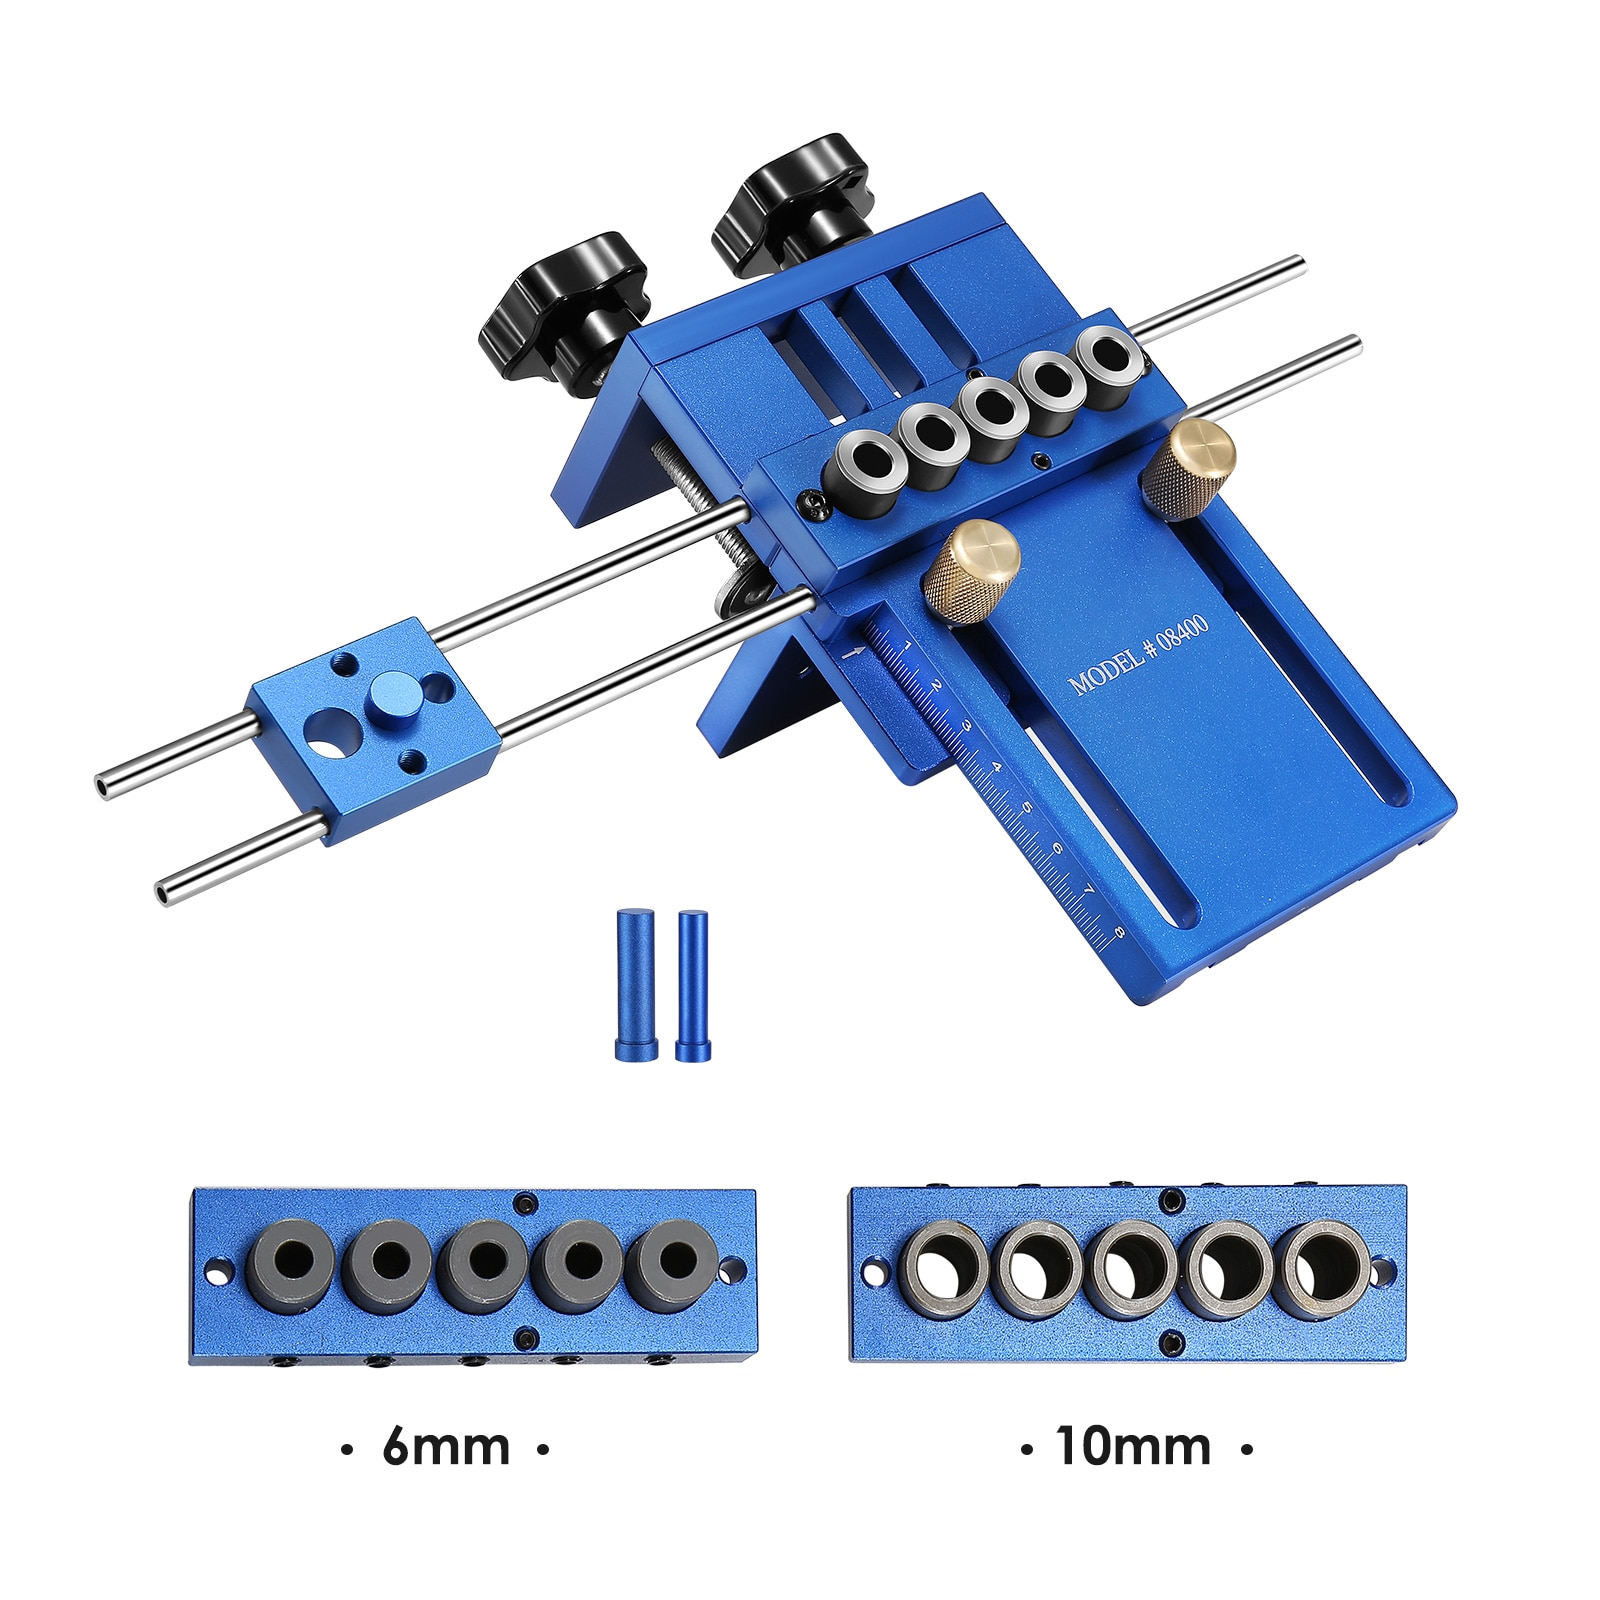 3 In 1 Dowelling Jig Woodworking Joinery Punch Locator Accurate Self Centering Metric Dowel Home Drilling Tools Pocket Hole Jig